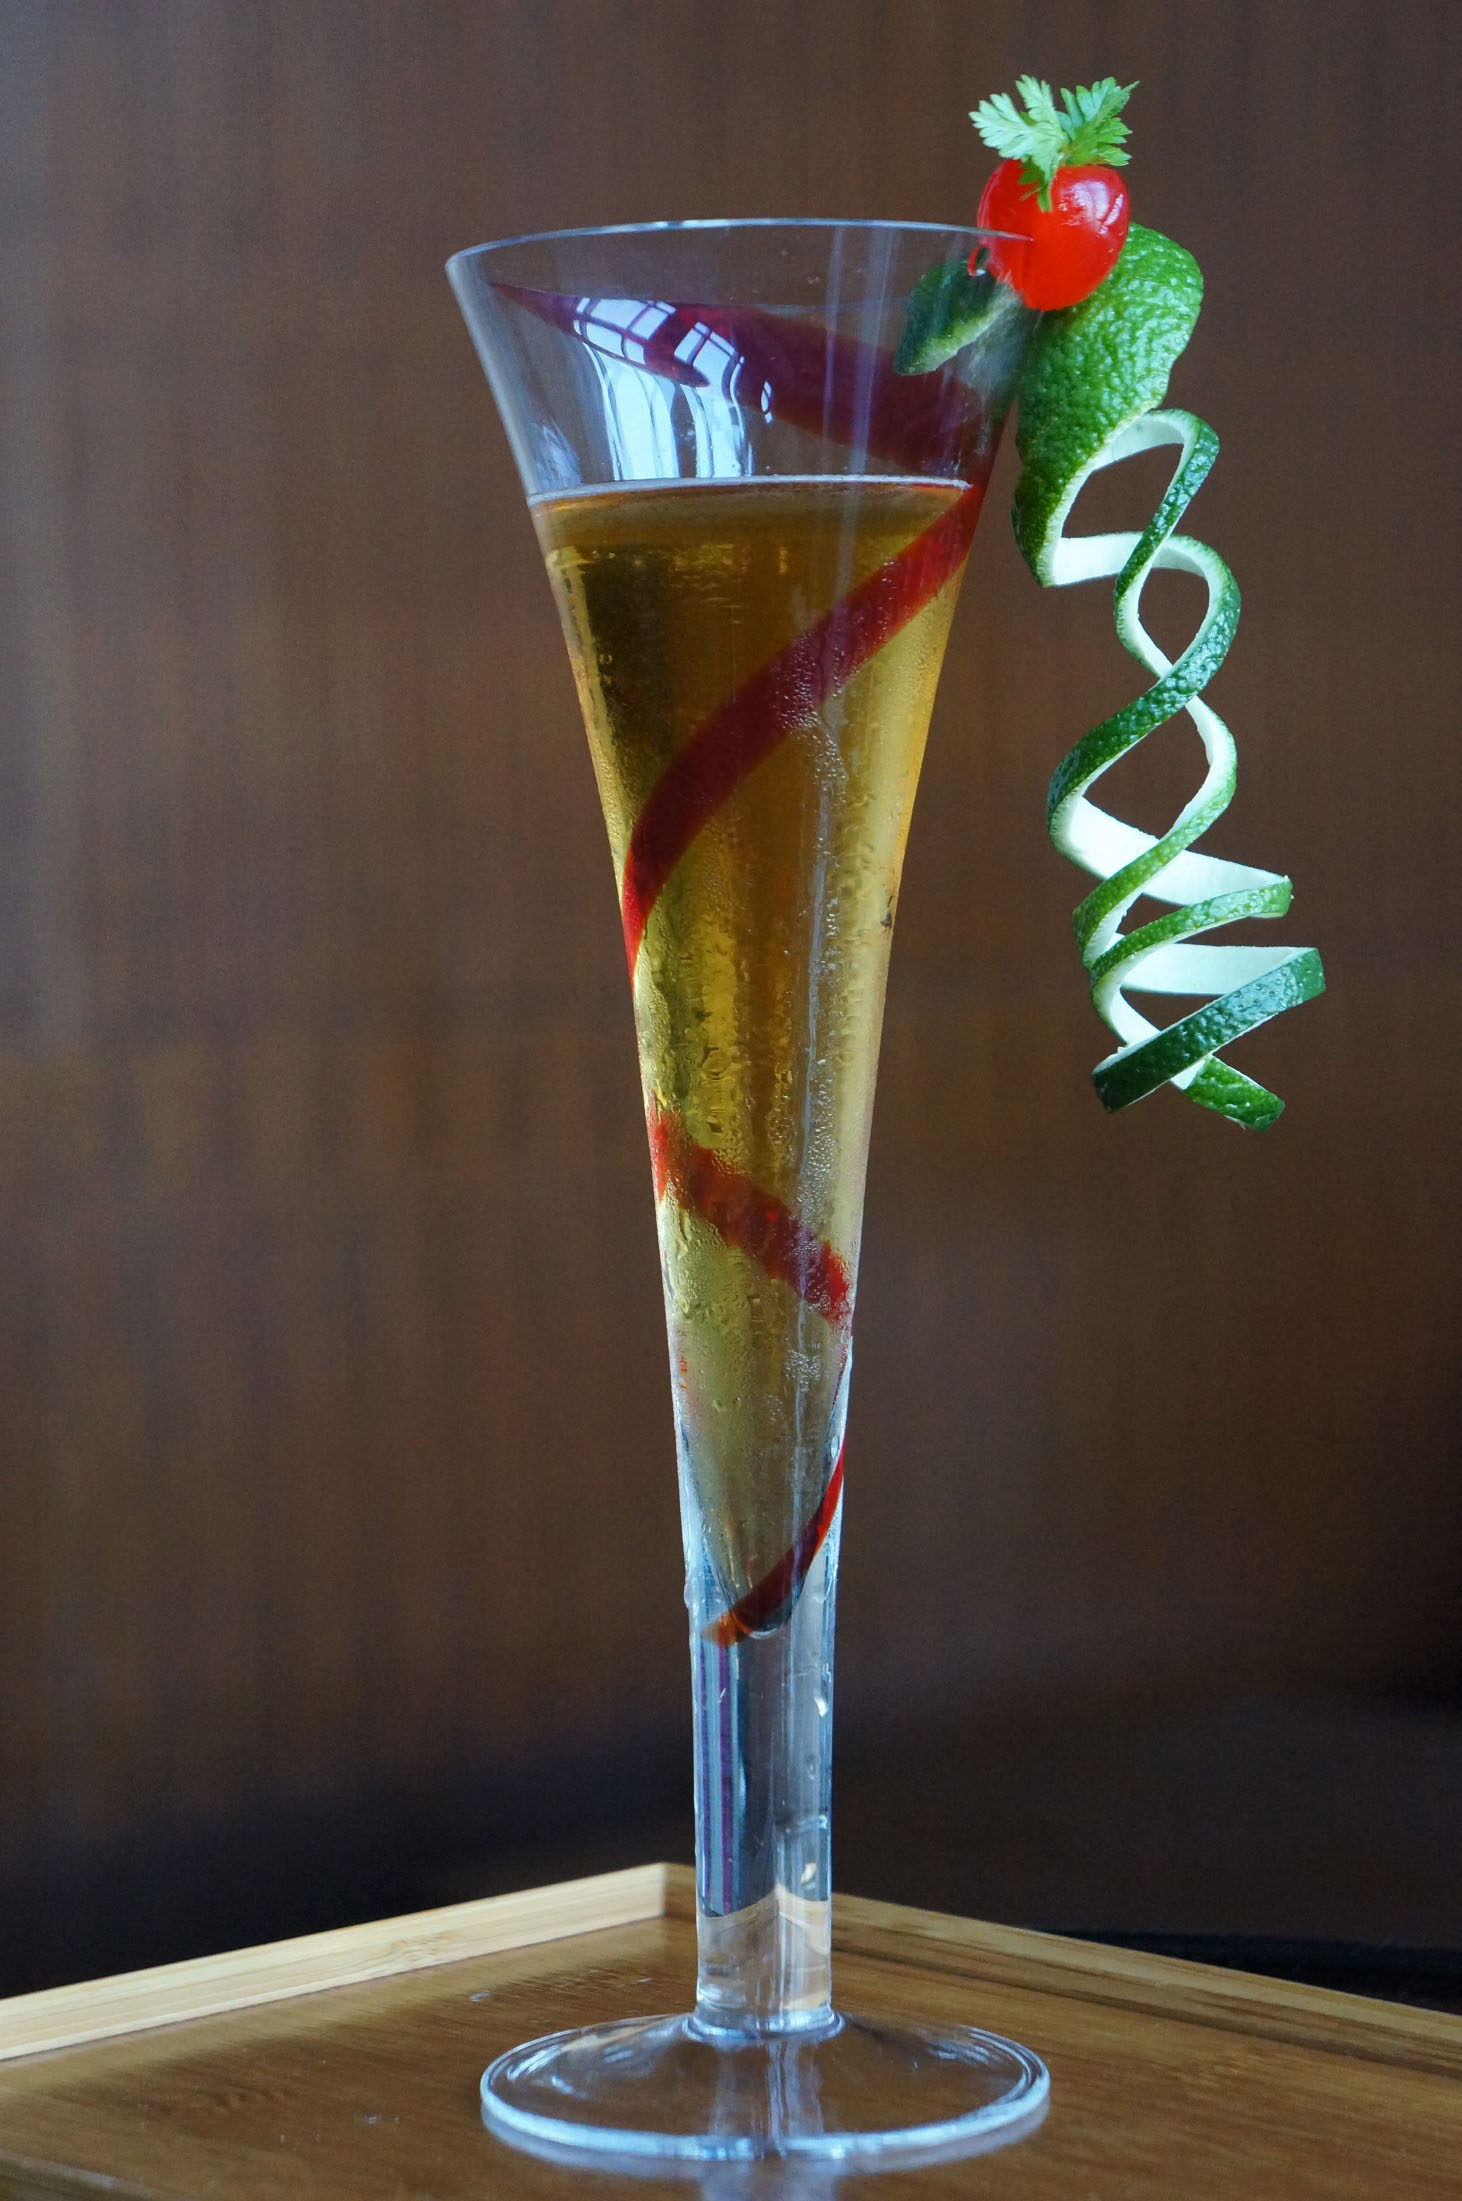 ... sake and strawberry cocktail are slowly gaining popularity, despite